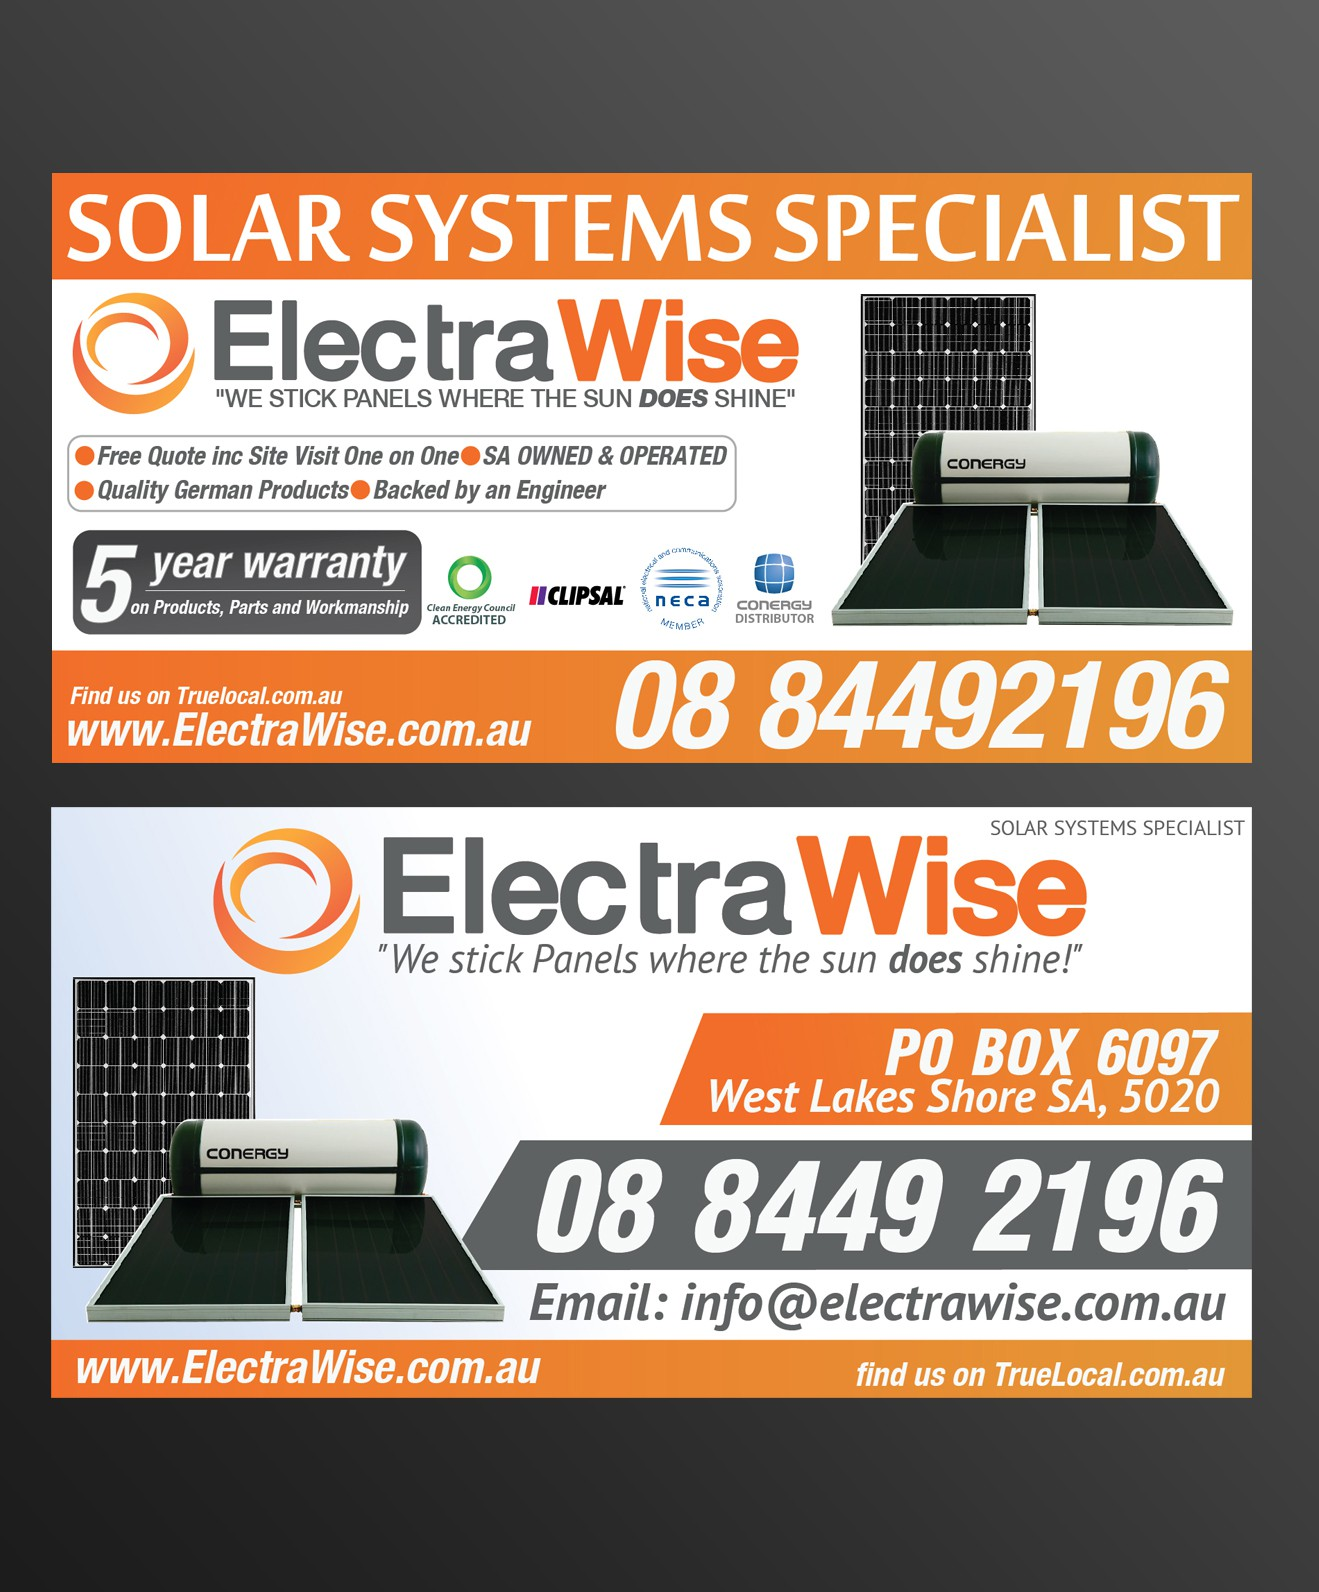 ElectraWise needs a new print or packaging design